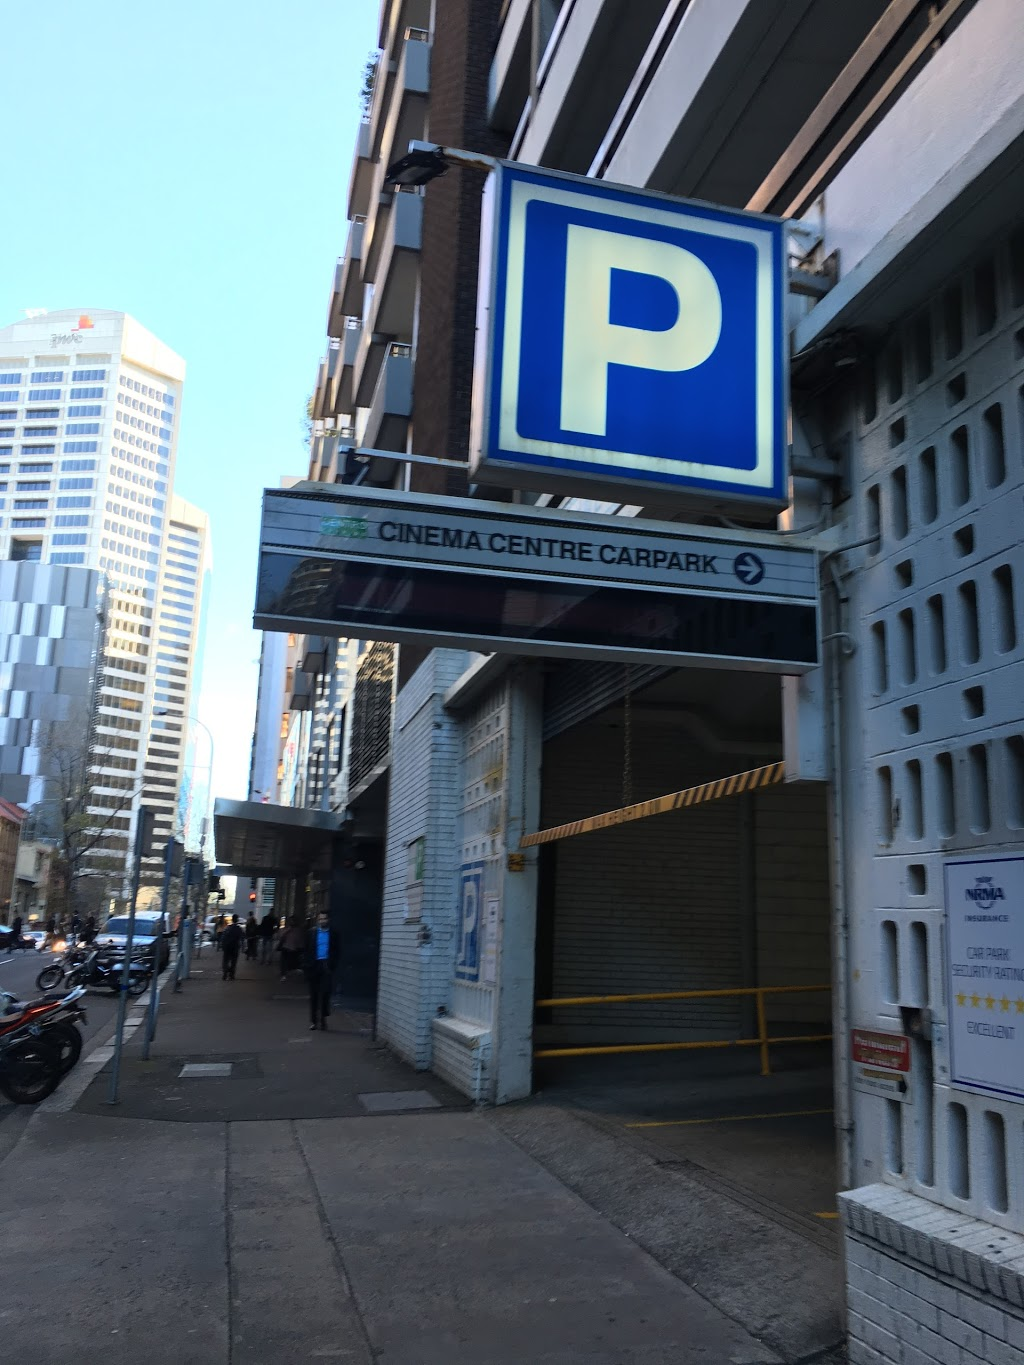 Cinema Centre Car Park | parking | 521 Kent St, Sydney NSW 2000, Australia | 0292645867 OR +61 2 9264 5867